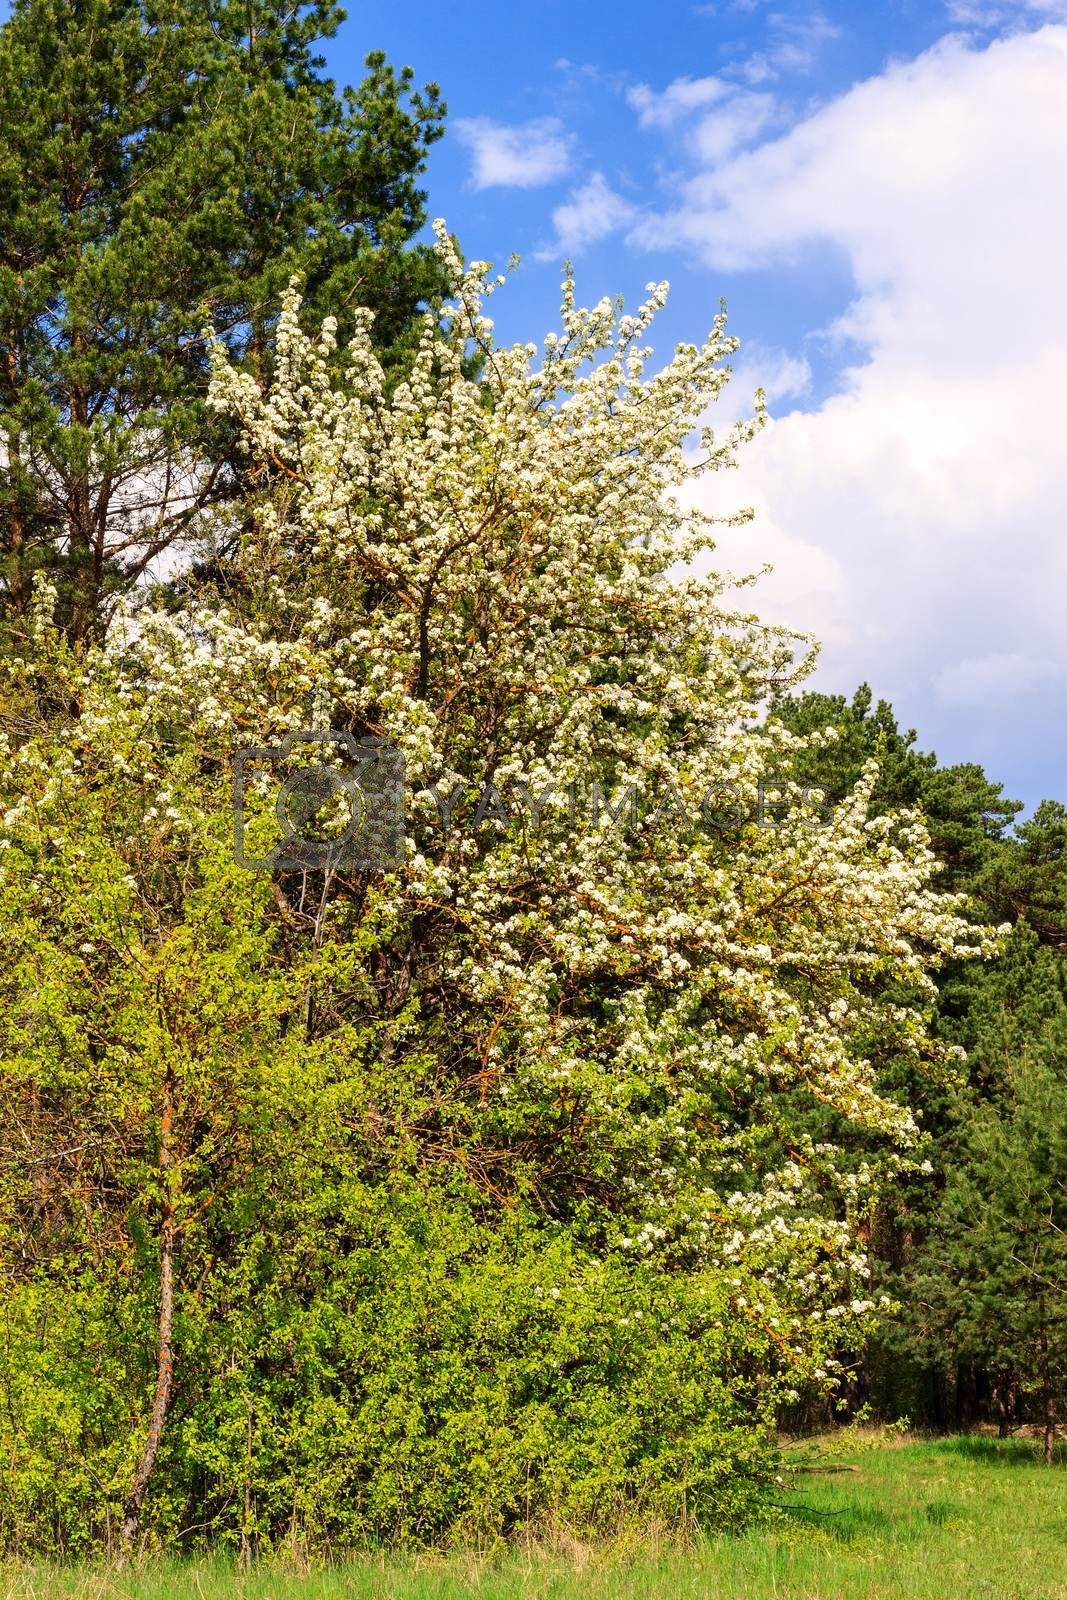 pear tree with flowers at spring season, May